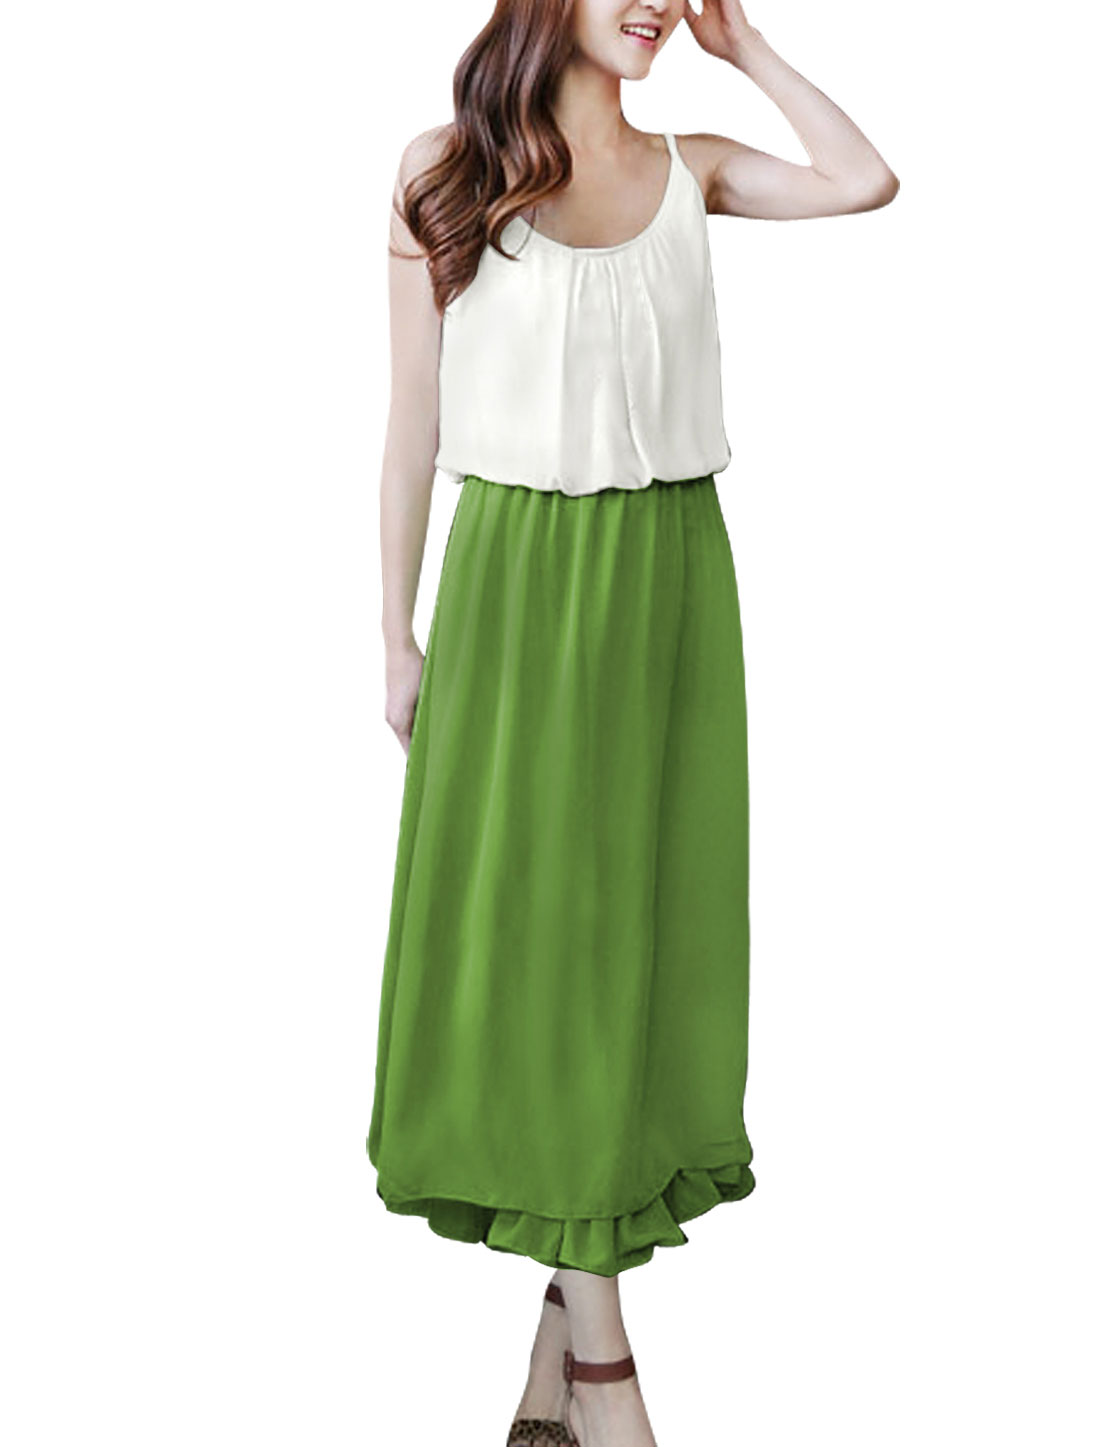 Lady Scoop Neck Sleeveless Elastic Waist Mid-Calf Blouson Dress Green White S